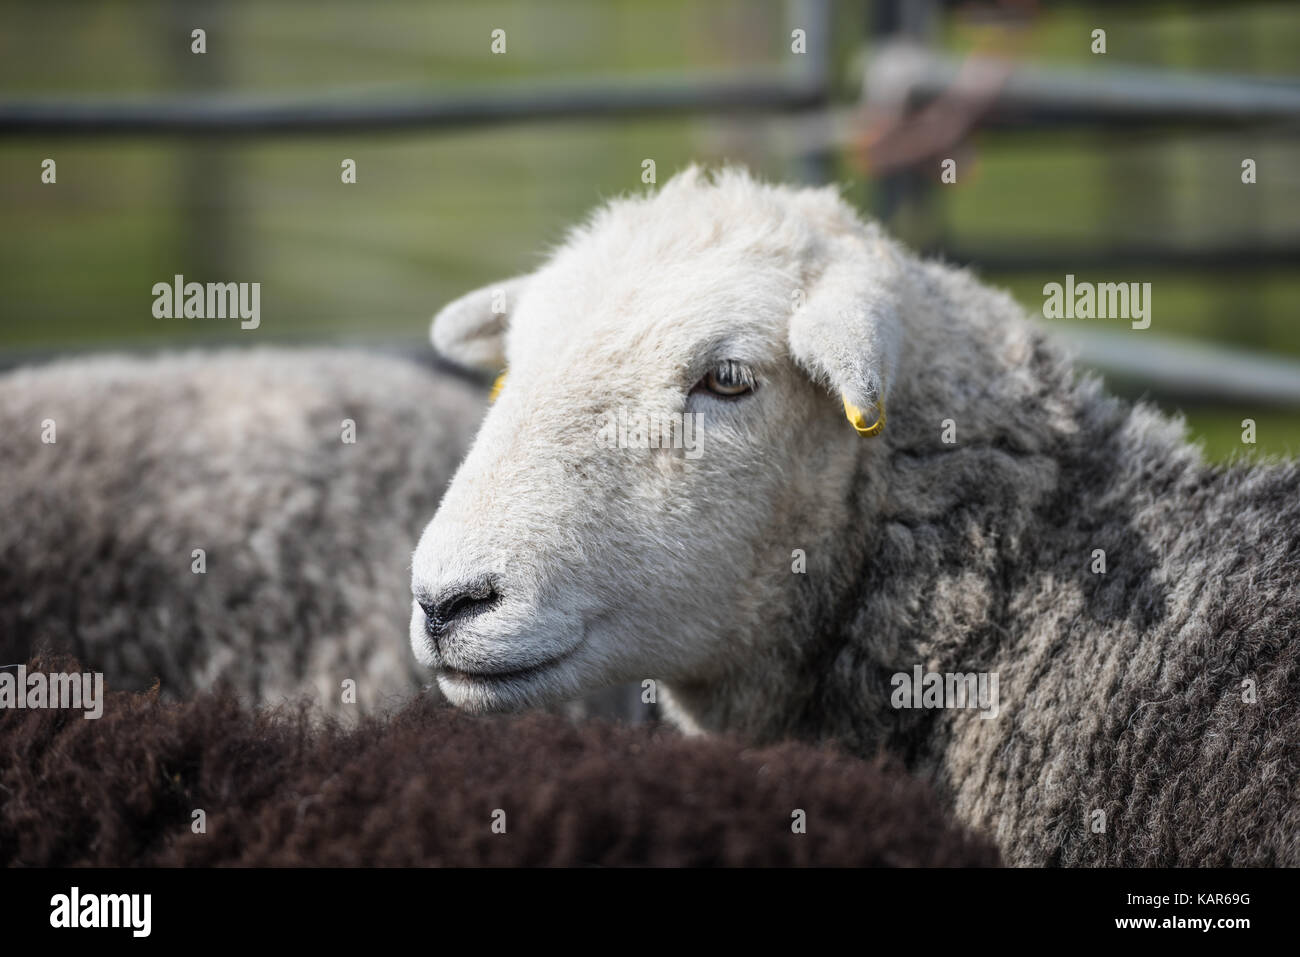 Herdwick sheep judging, Southern Agricultural Show, Isle of Man. - Stock Image